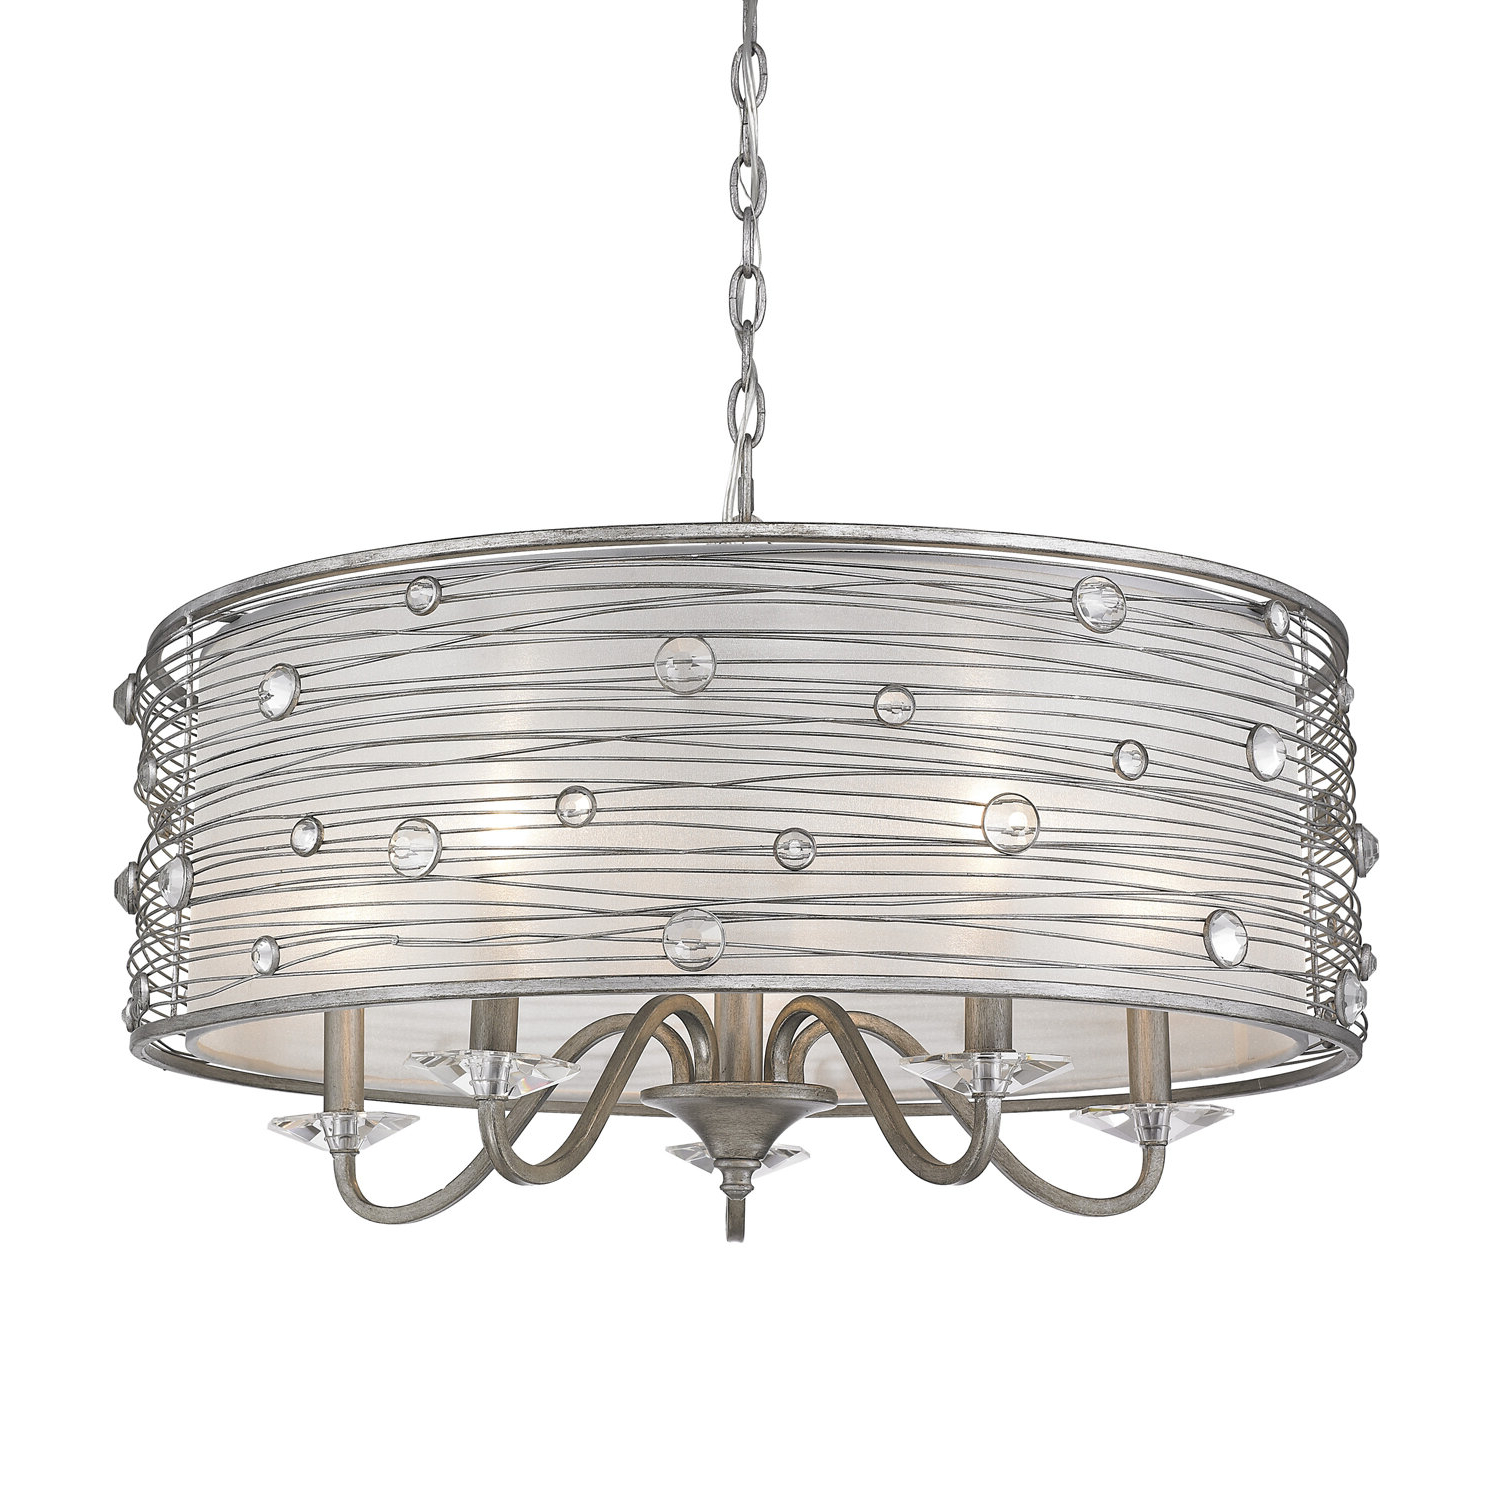 Hermione 5-Light Drum Chandelier intended for Well-liked Buster 5-Light Drum Chandeliers